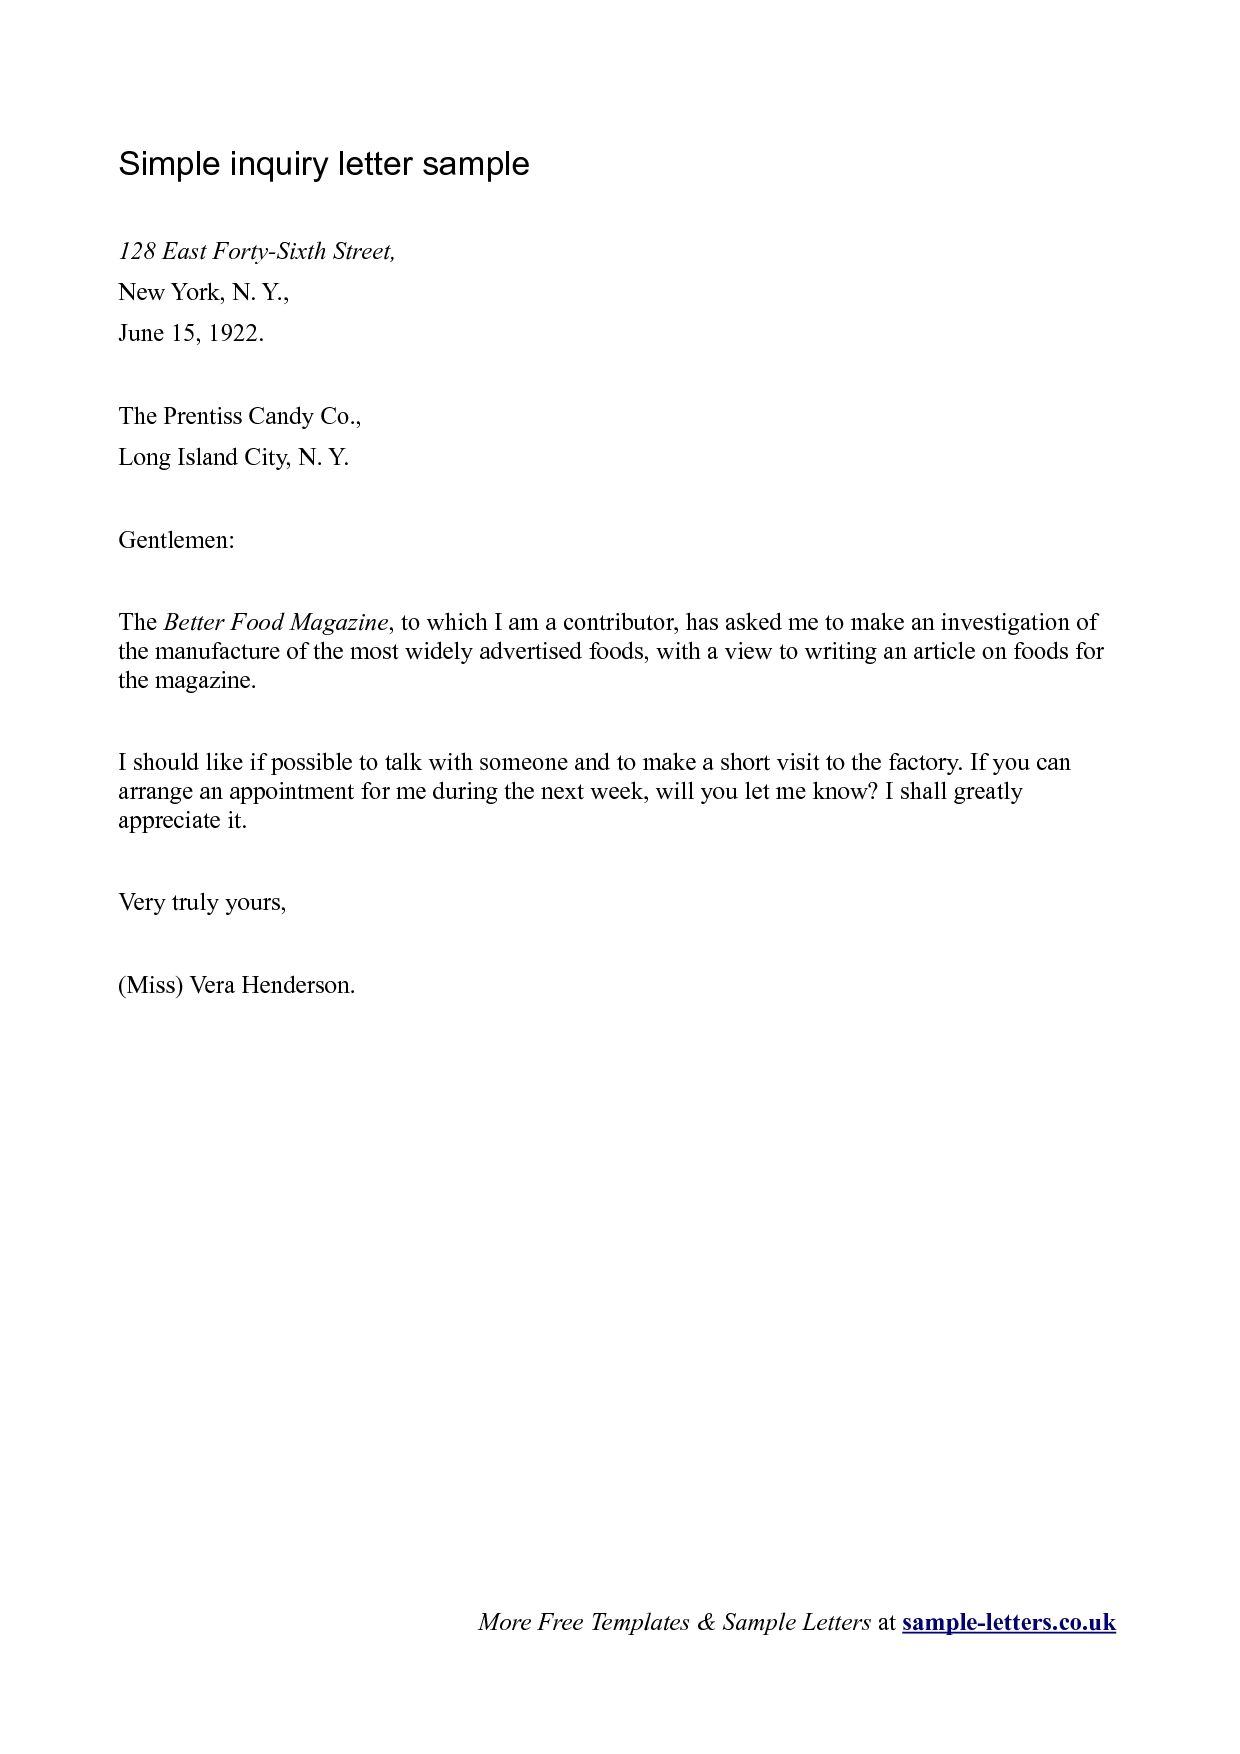 Good Business Letter Of Inquiry Sample The Letter Sample Ideas Inquiry Letters Sample